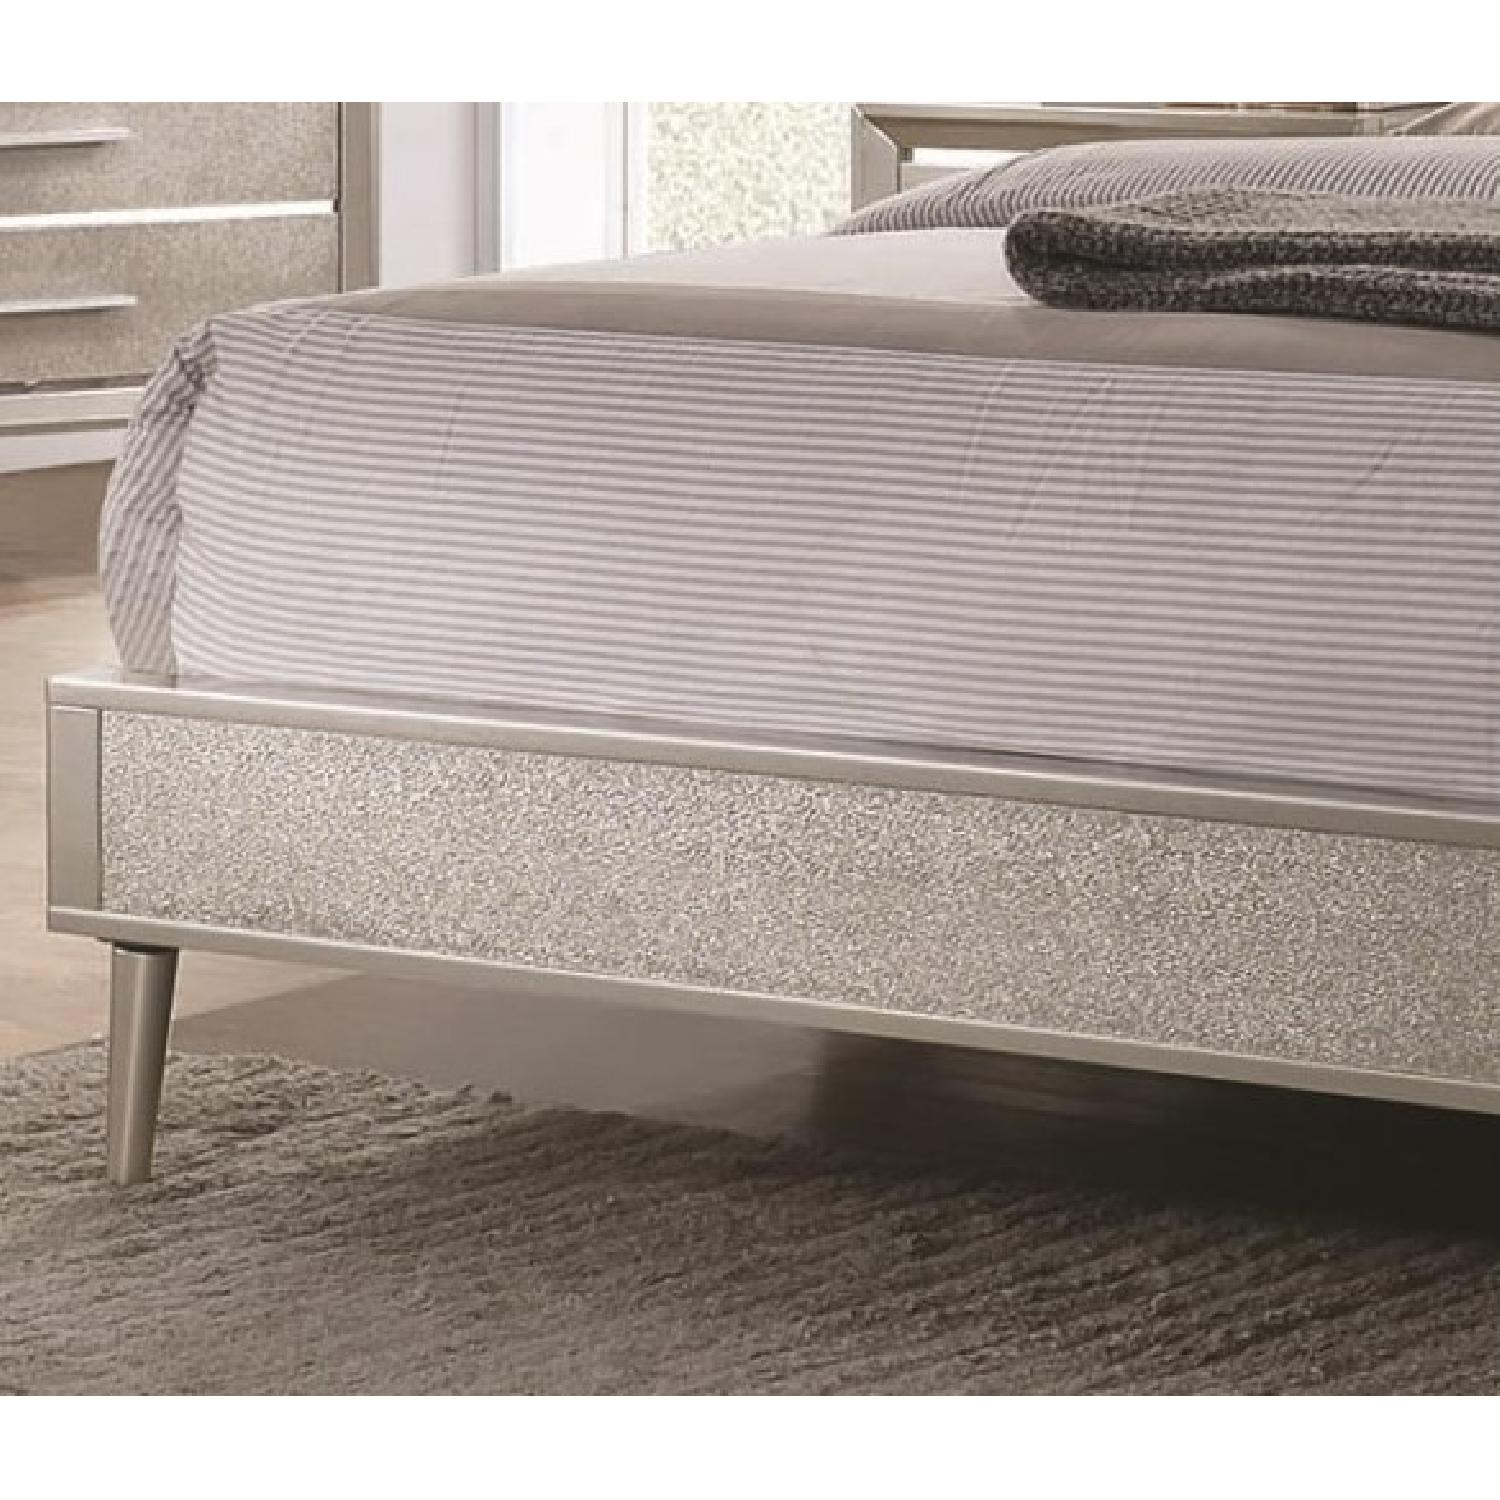 Mid Century Style Full Bed in Metallic Silver Glitter Design - image-1